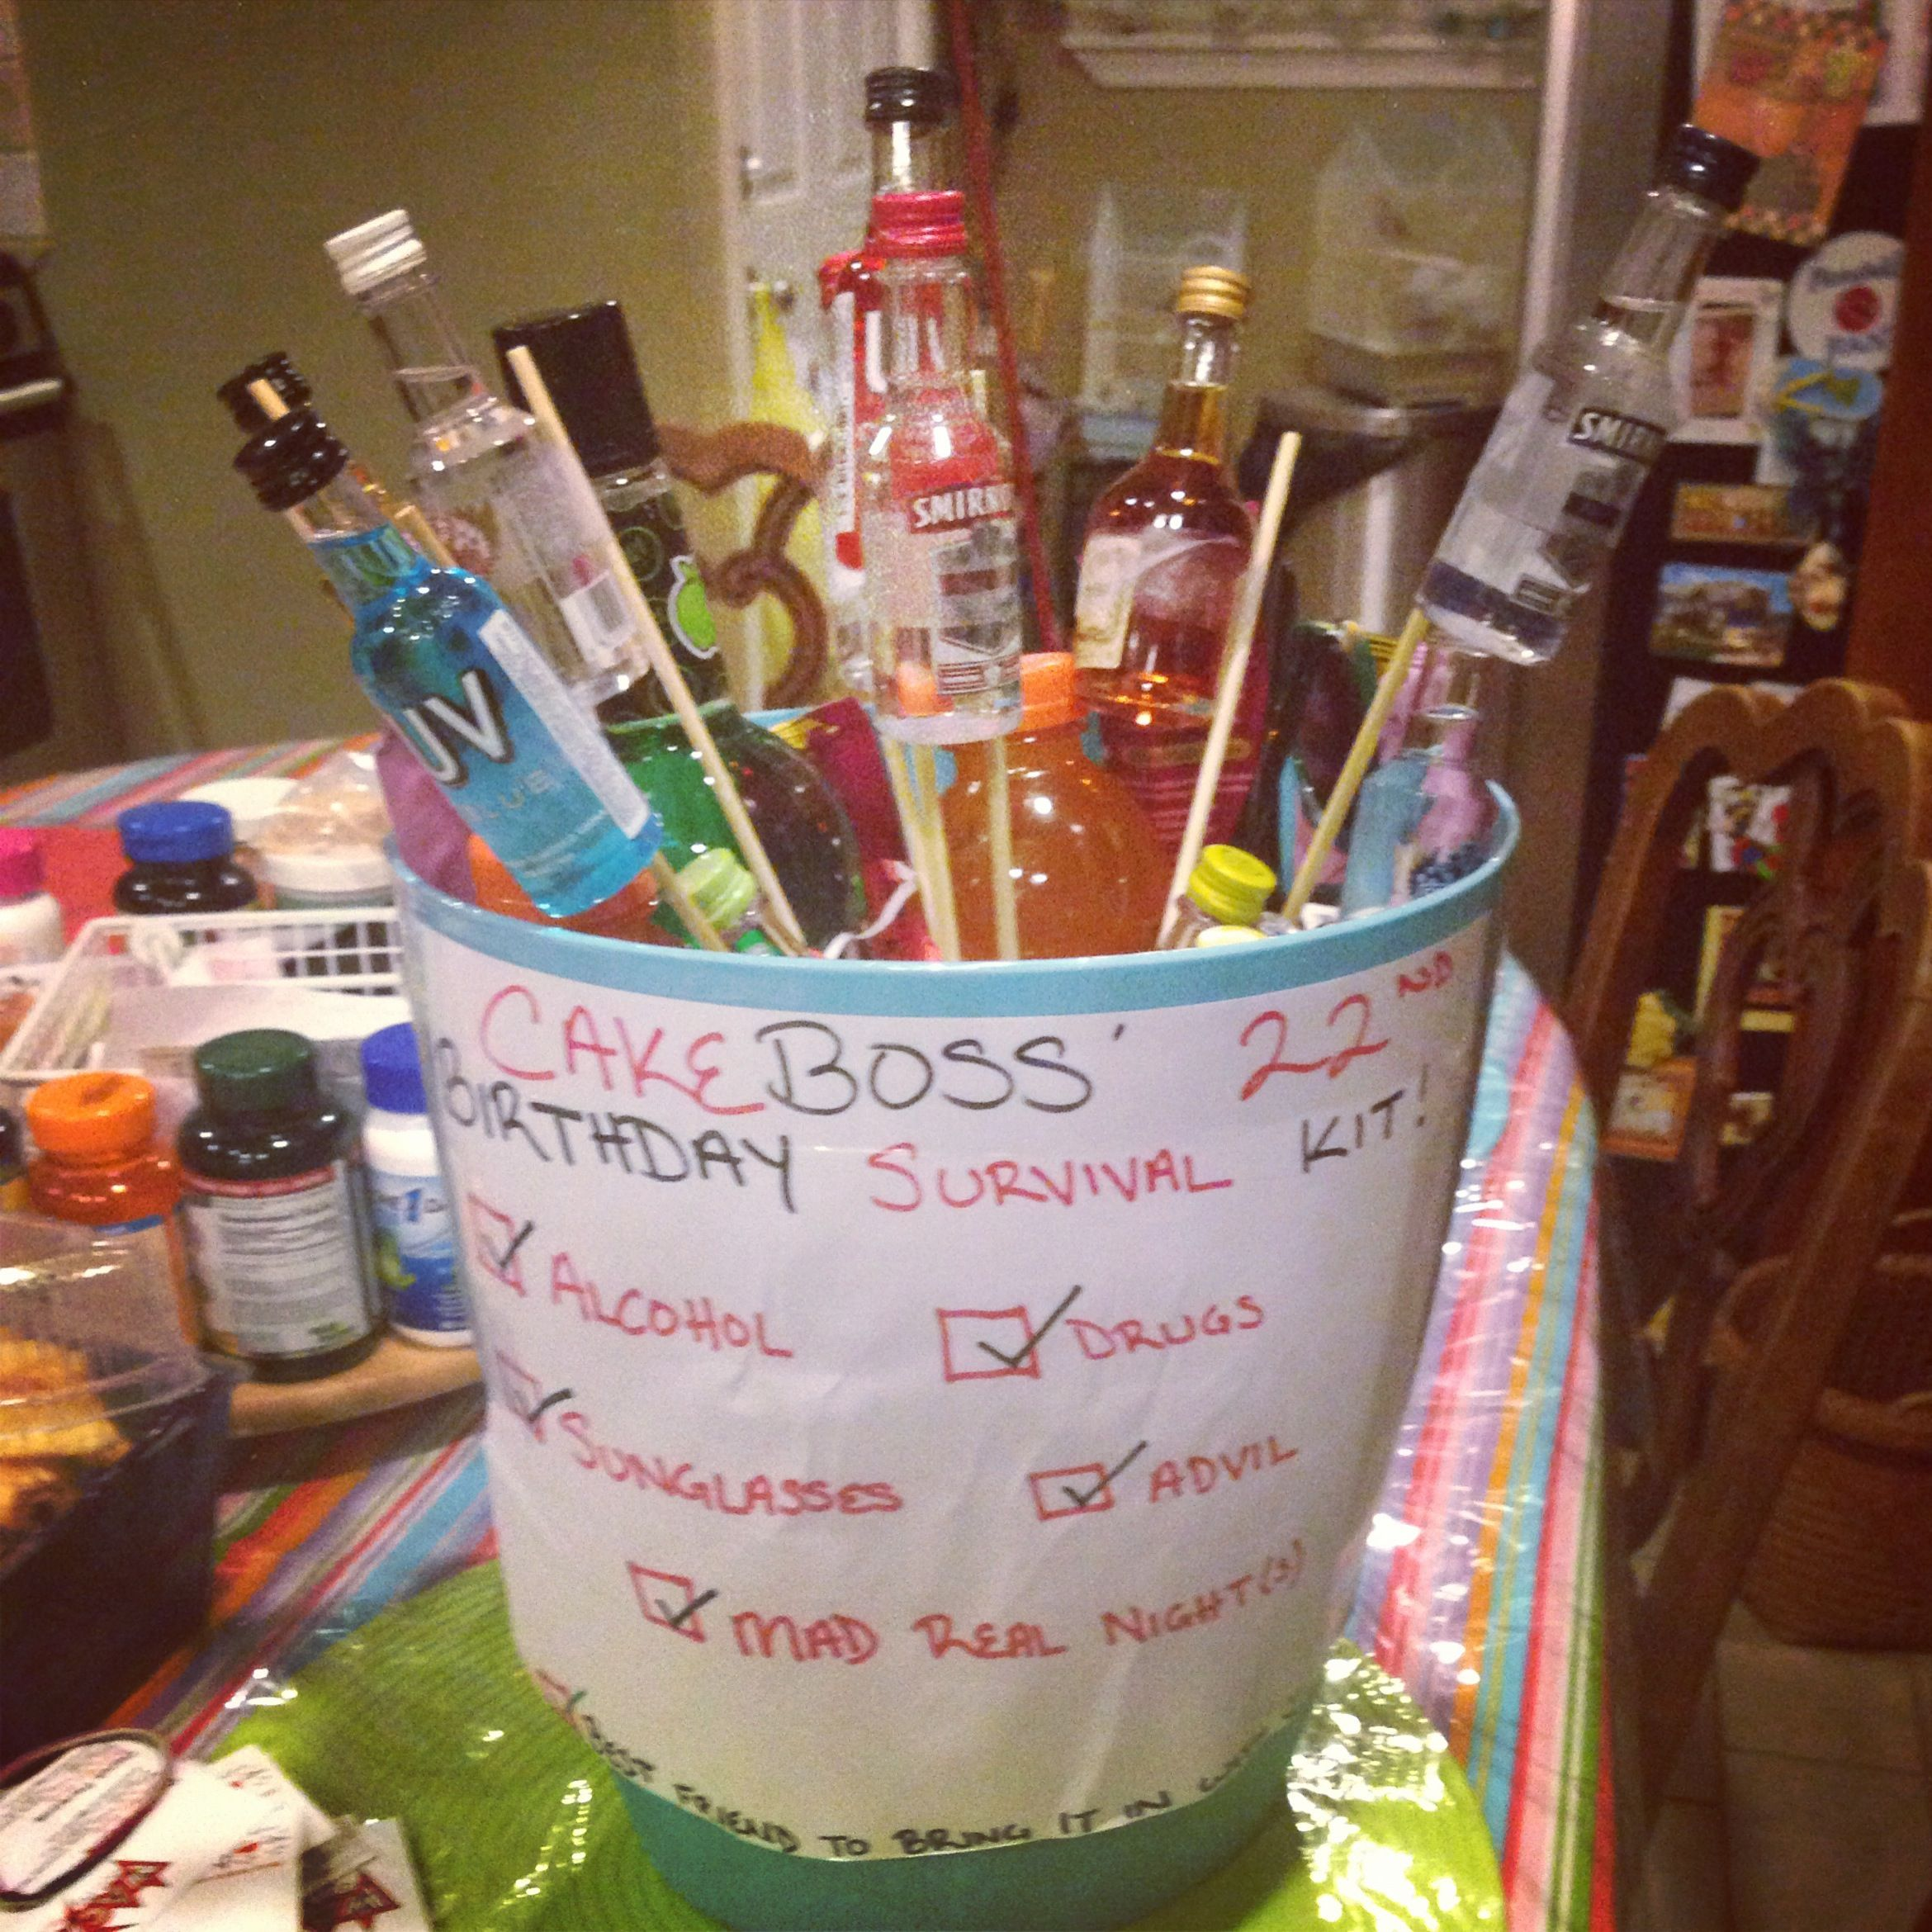 Marias 23rd birthday shot gift basket Shot bottle gift basket